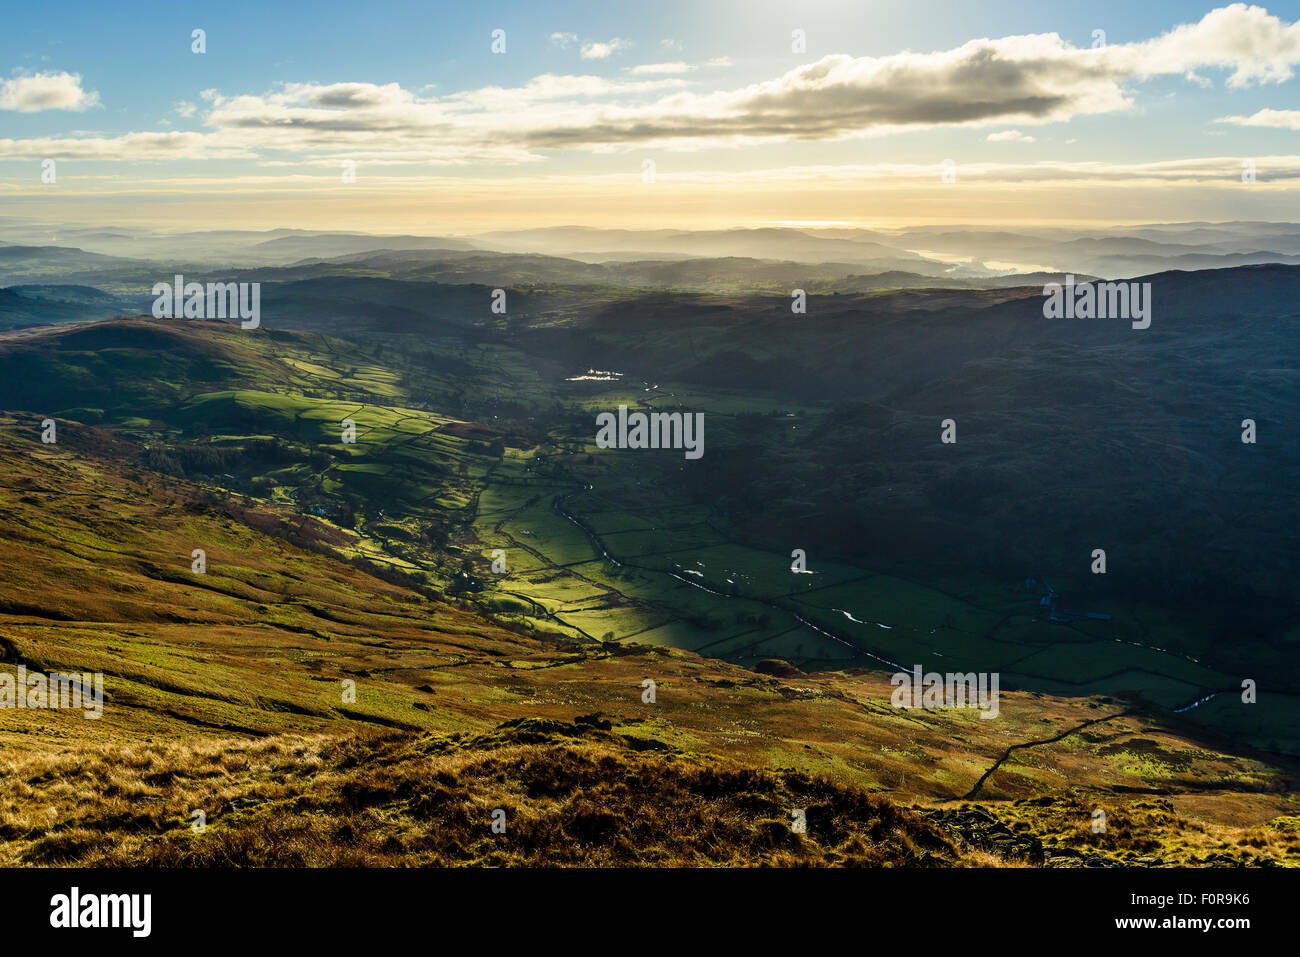 Temperature inversion over Kentmere valley Lake District from slopes of Kentmere Pike with a glimpse of Windermere. - Stock Image